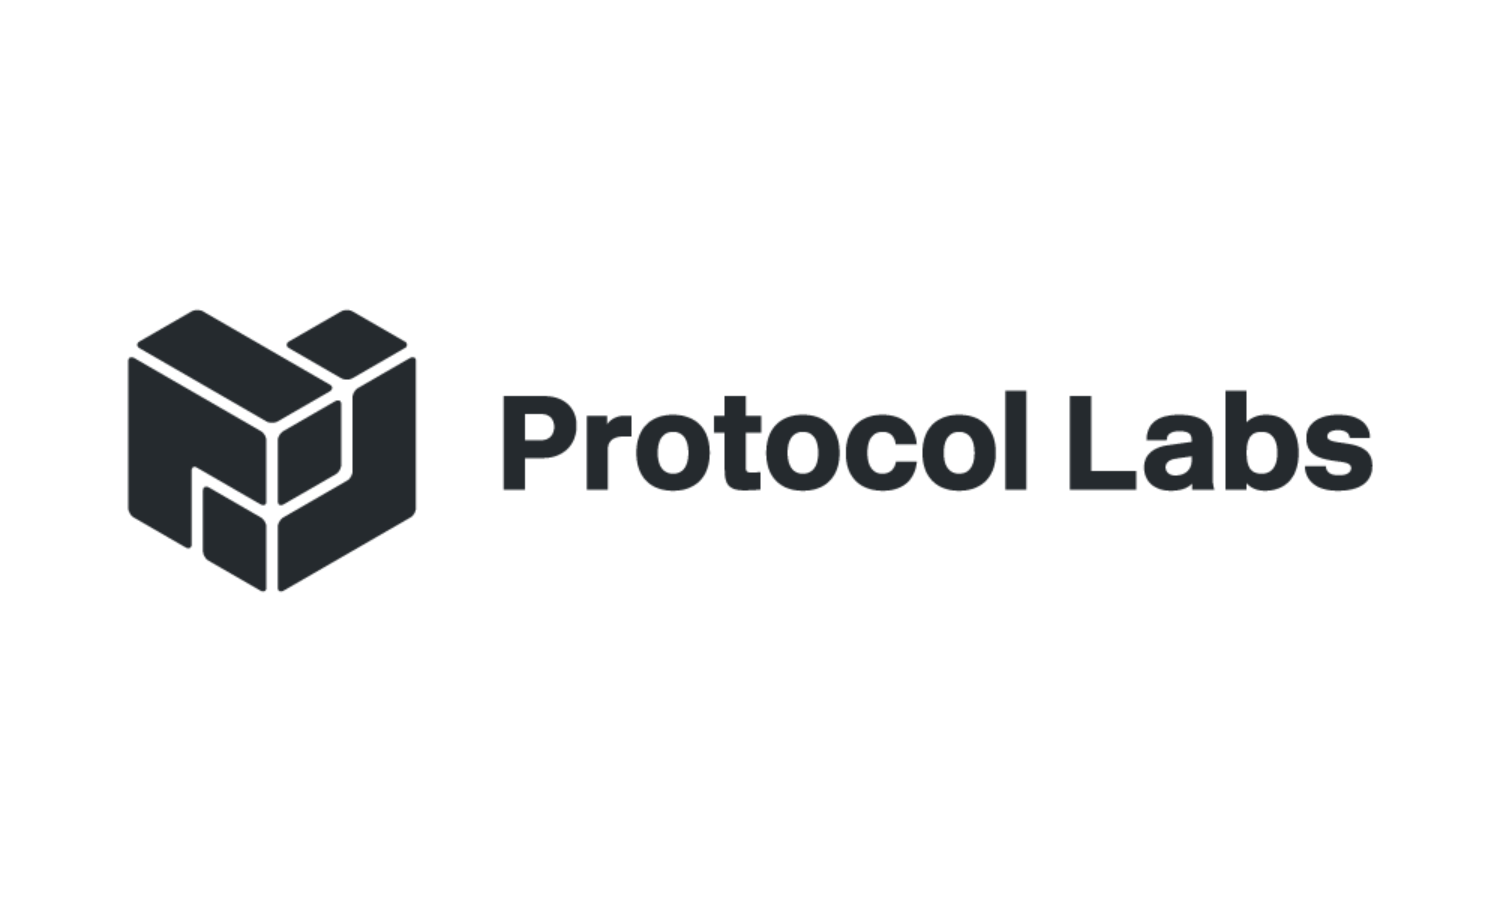 Protcol Labs